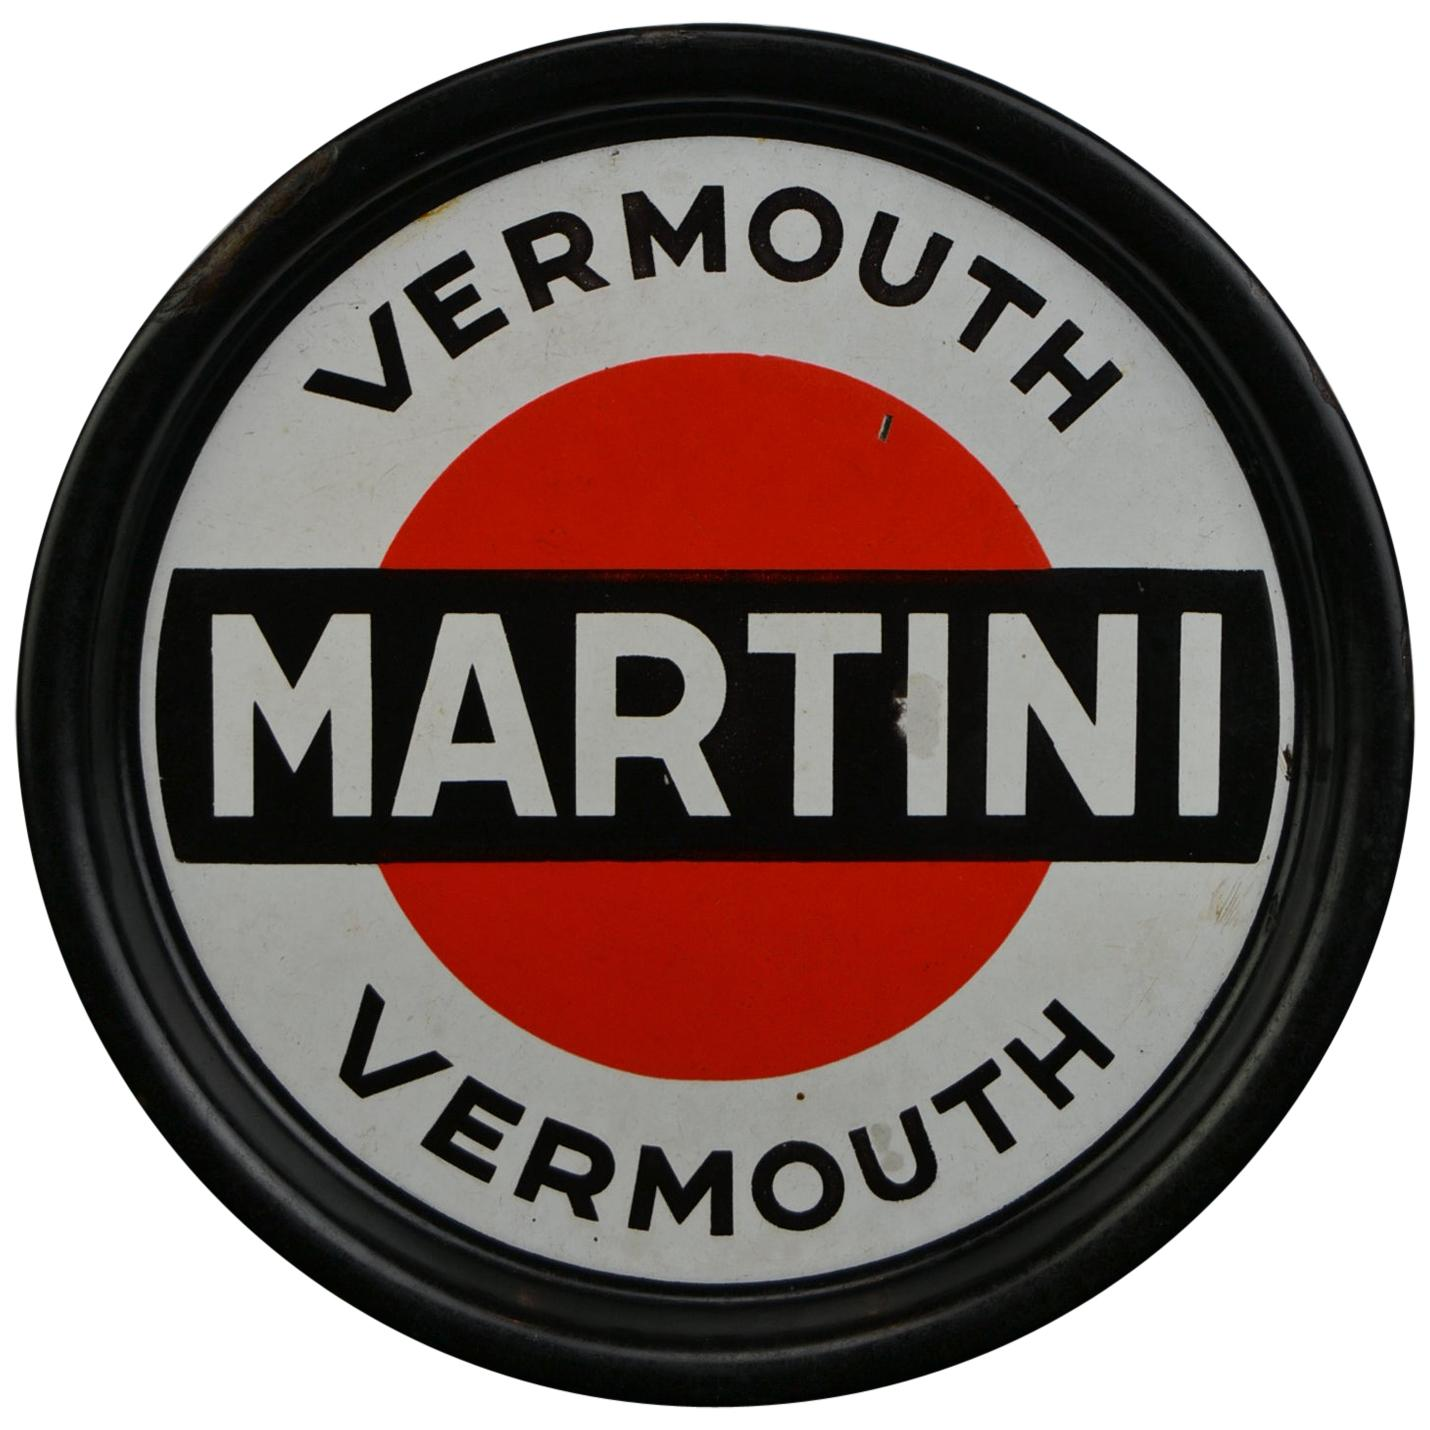 Porcelain Martini Vermouth Tray, Enamel Advertising Sign, Mid-20th Century